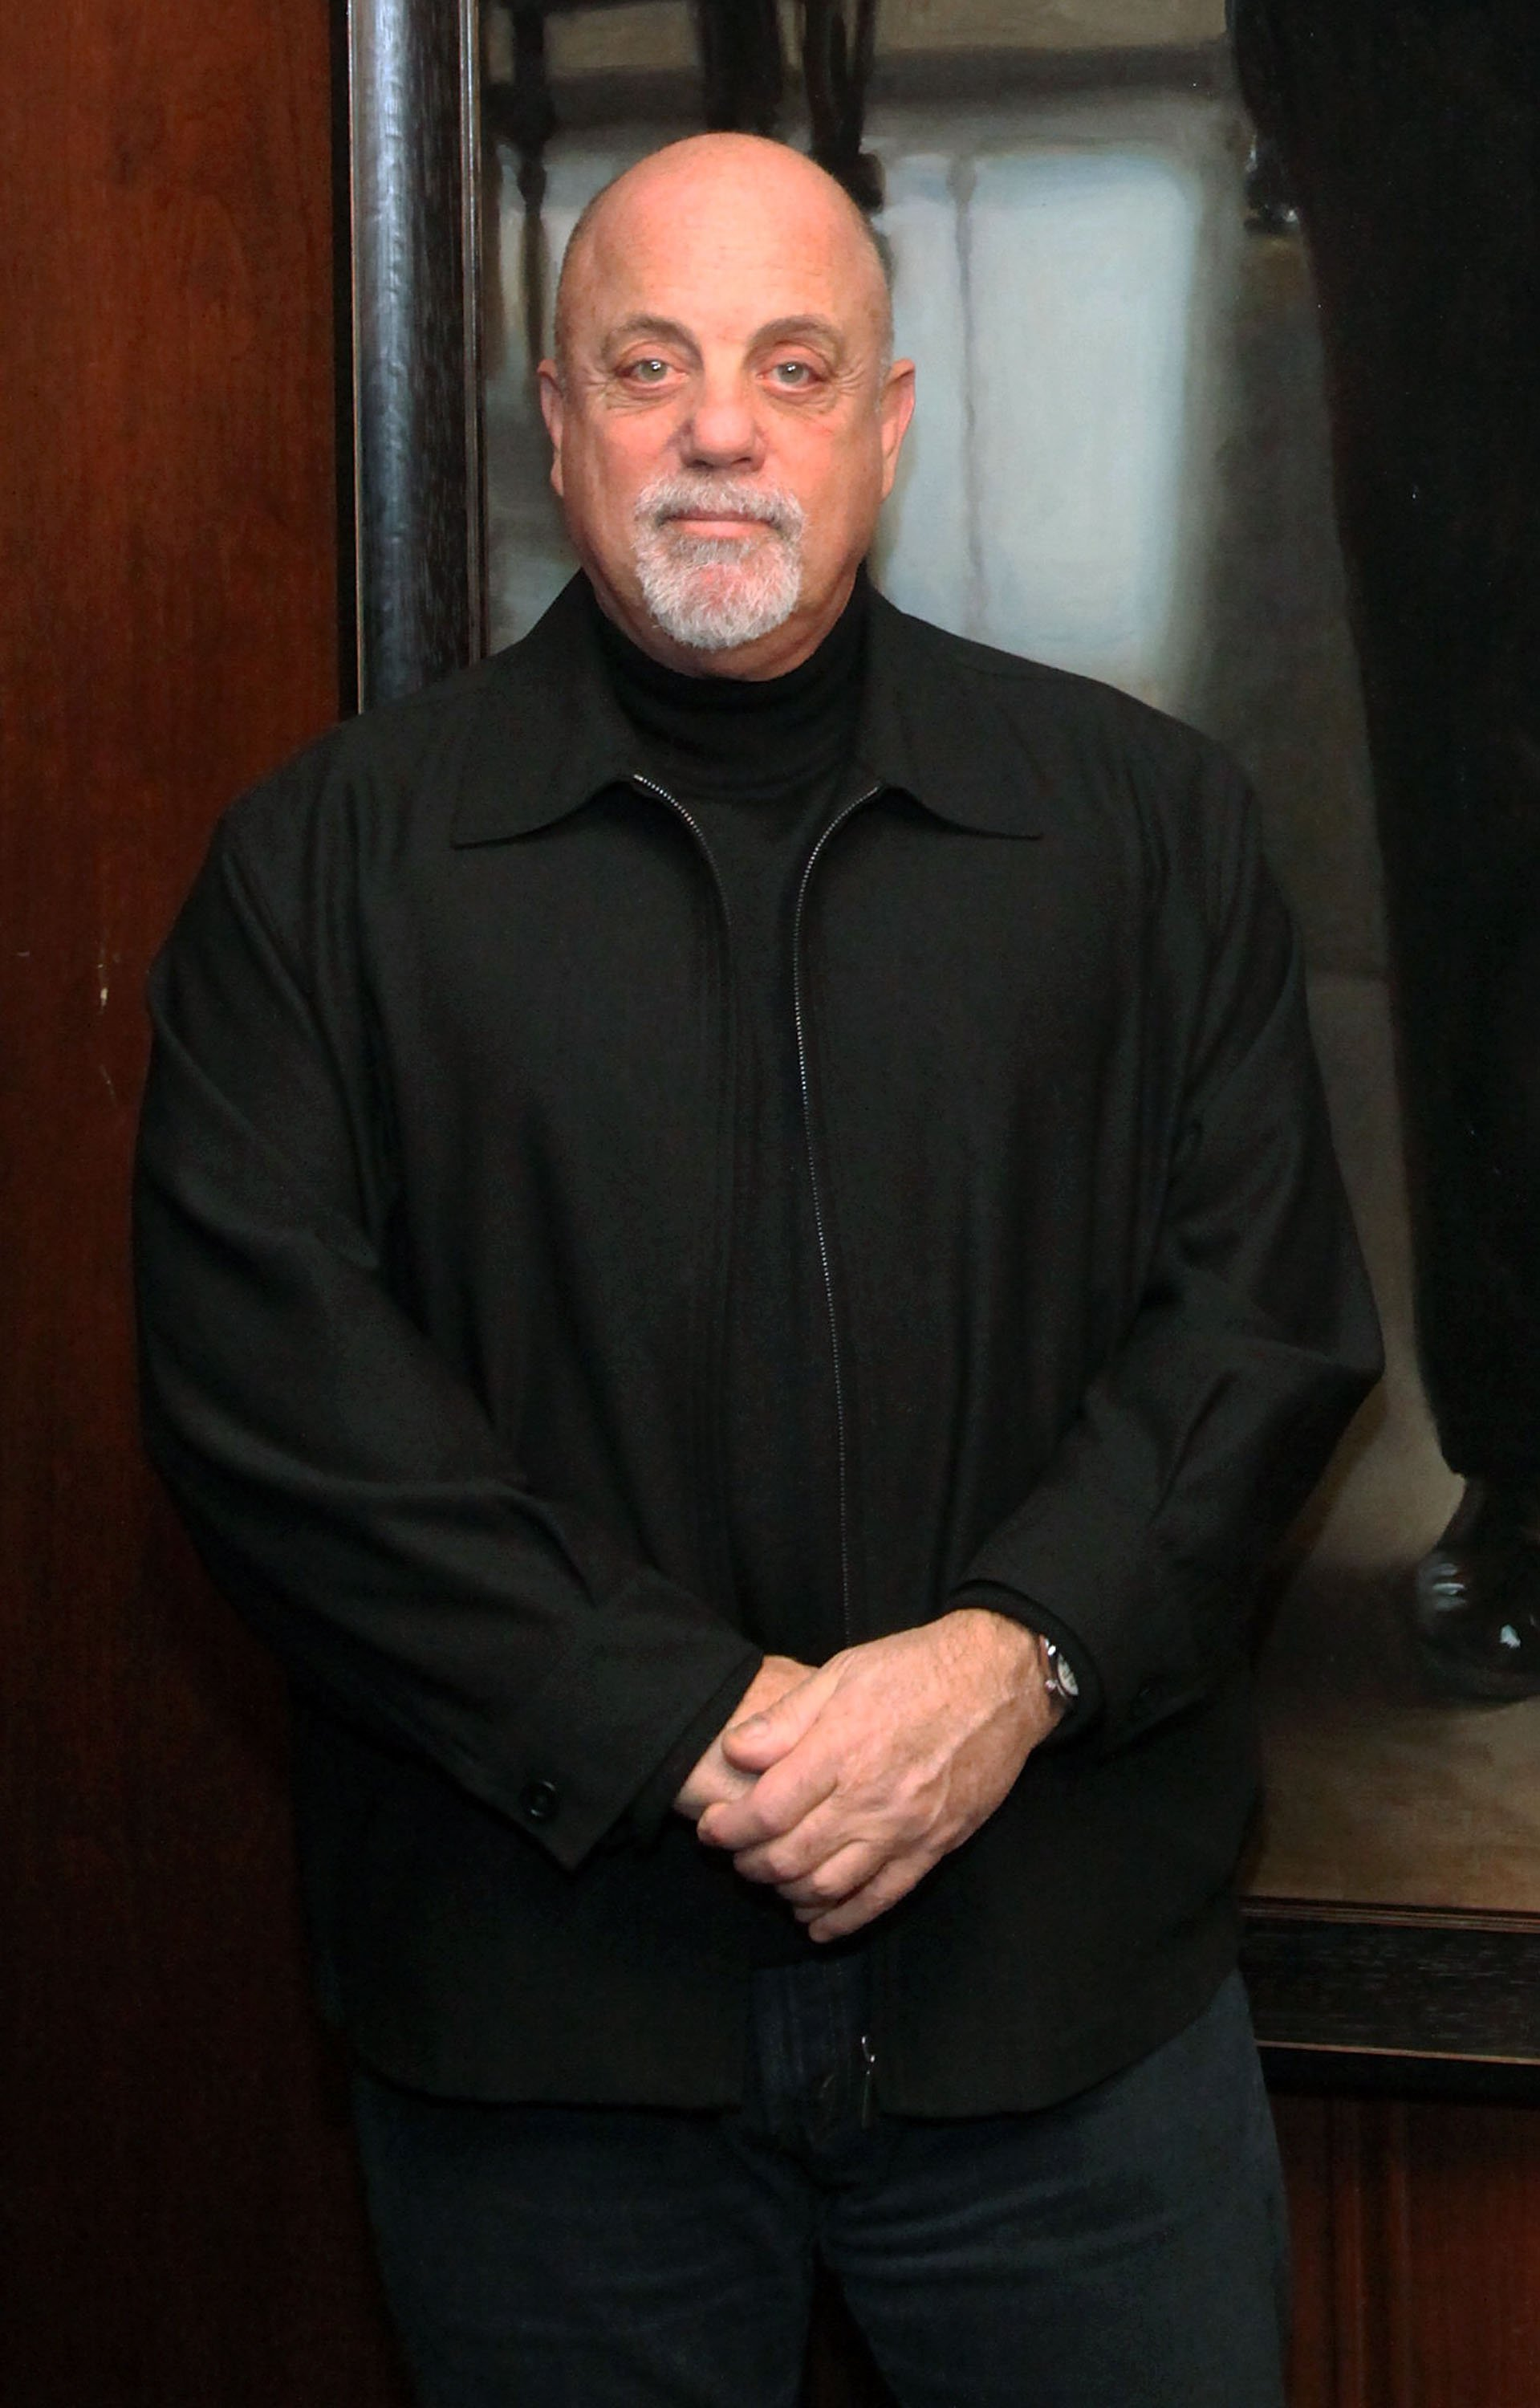 Image Credits: Getty Images / Astrid Stawiarz | Billy Joel stands next to his Steinway Hall Portrait at Steinway Hall on December 12, 2011 in New York City.